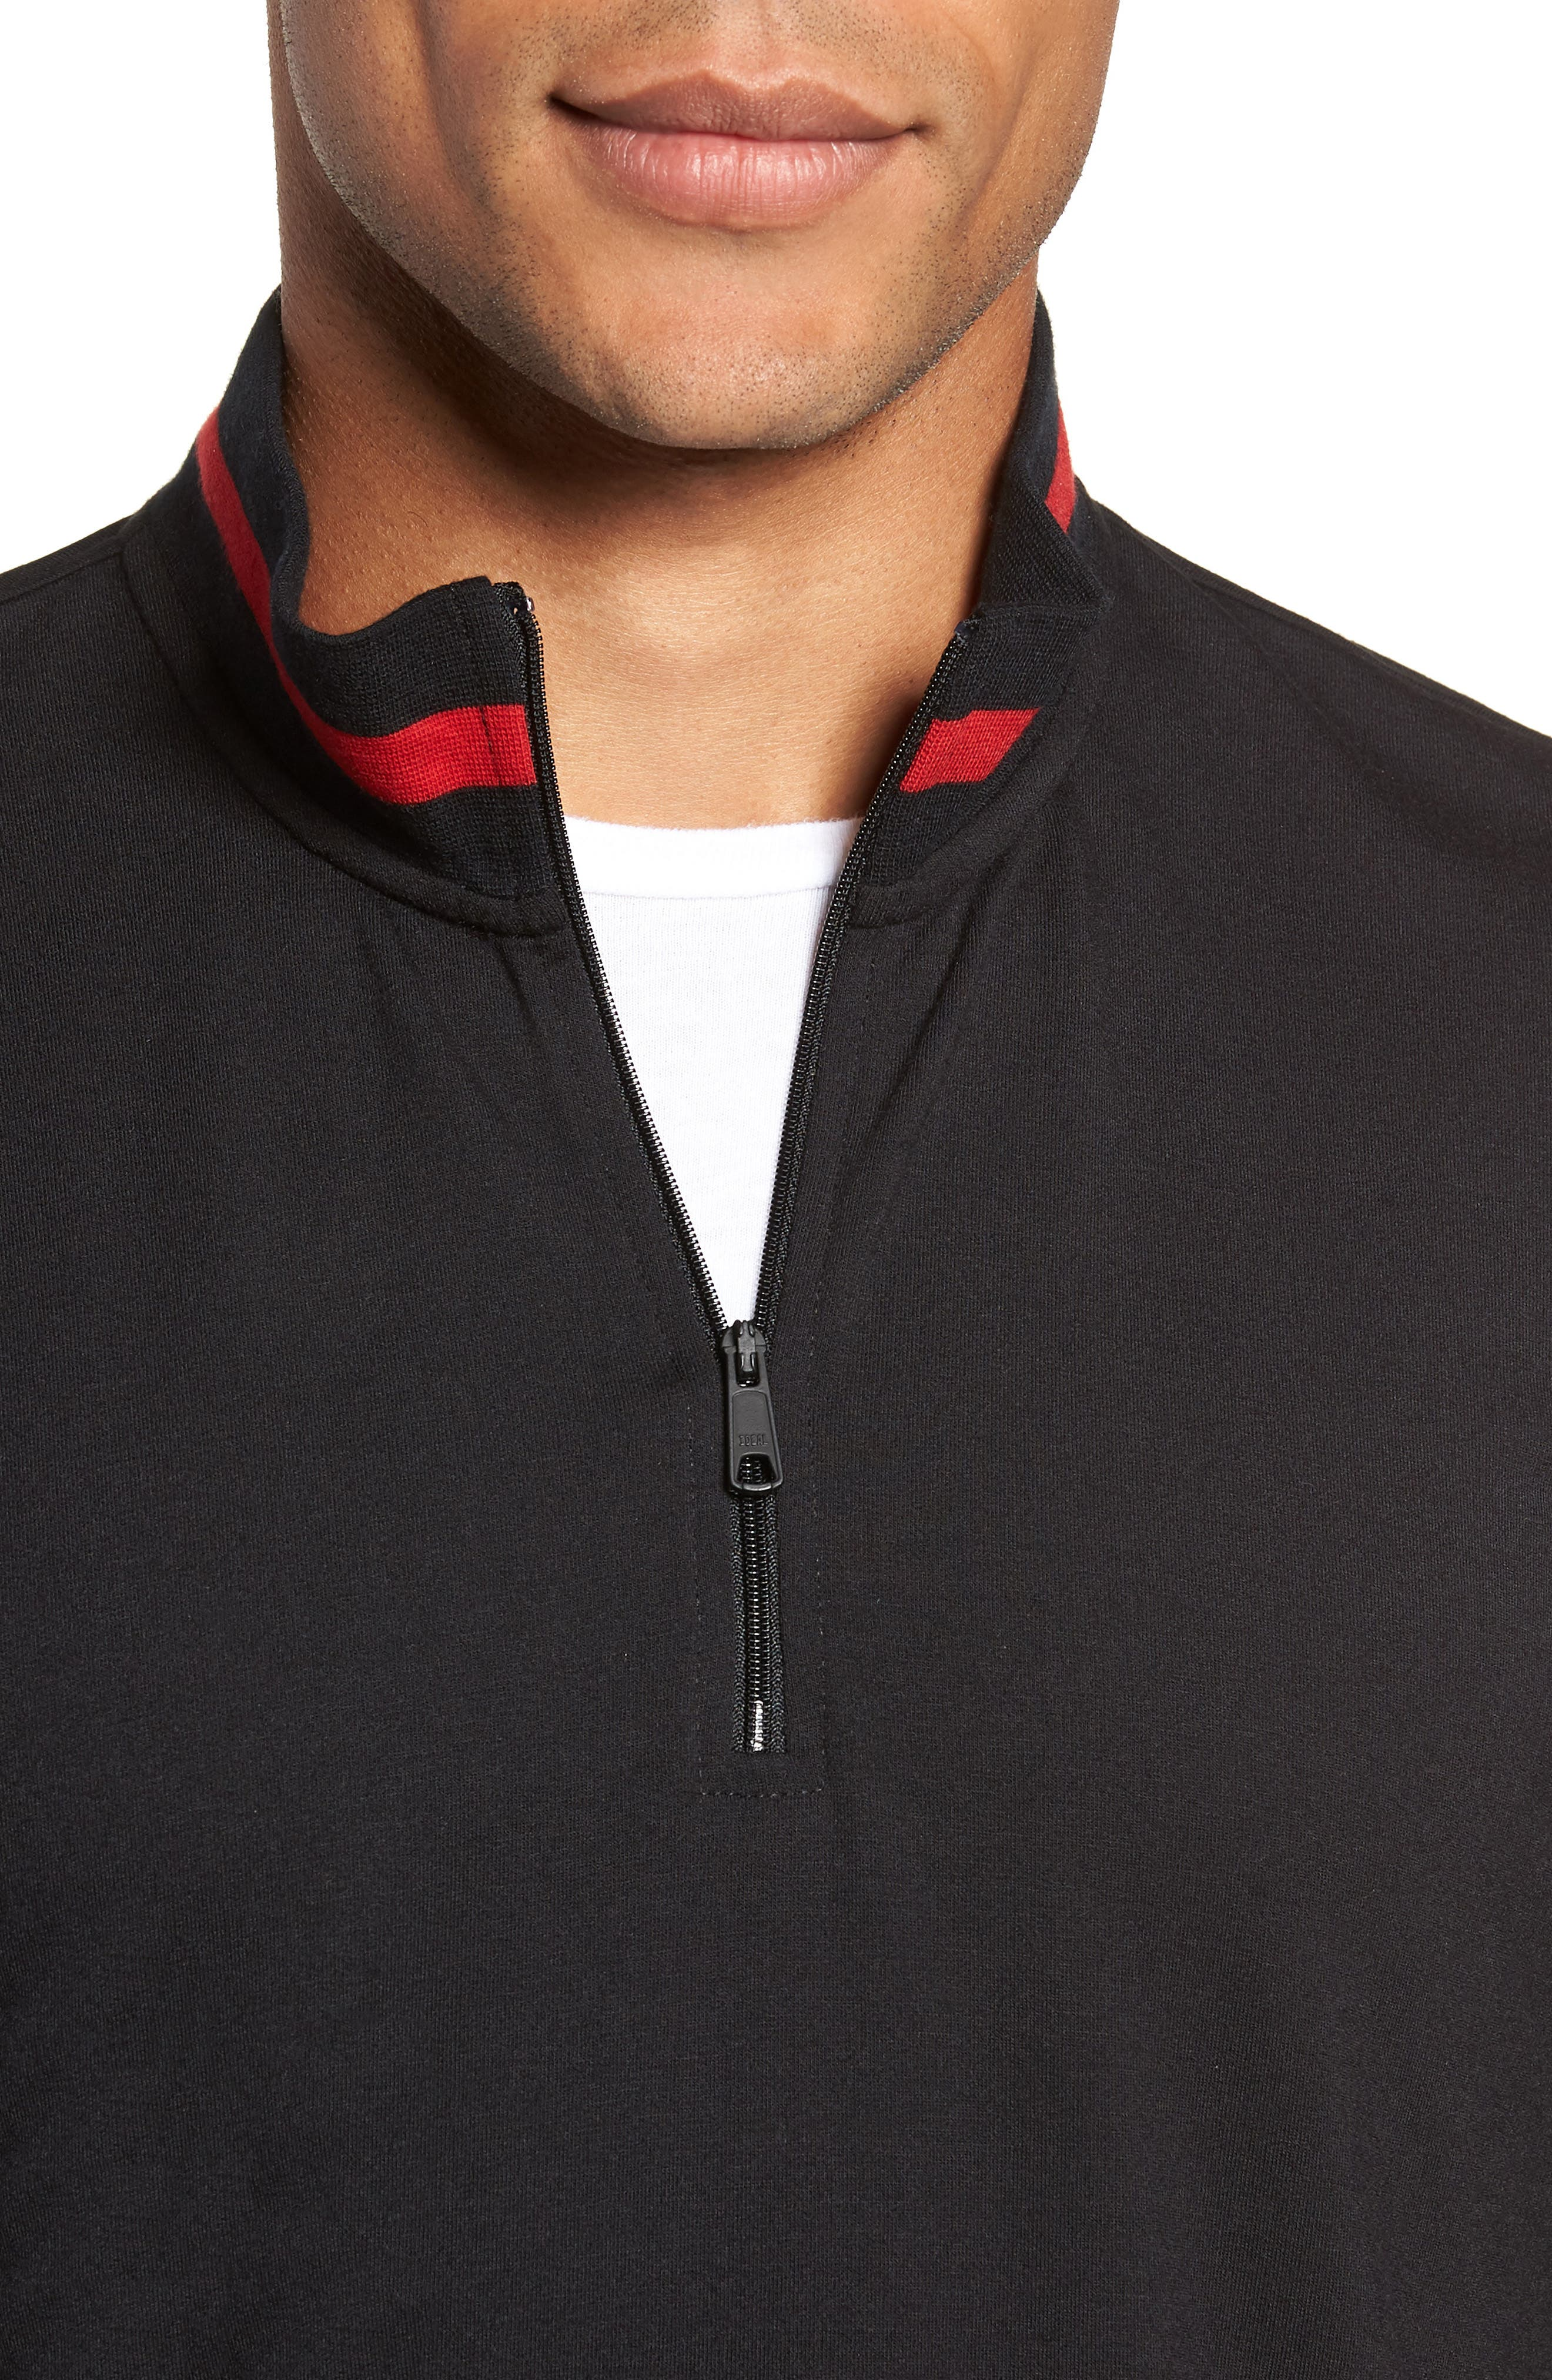 Half-Zip Pullover,                             Alternate thumbnail 4, color,                             POLO BLACK